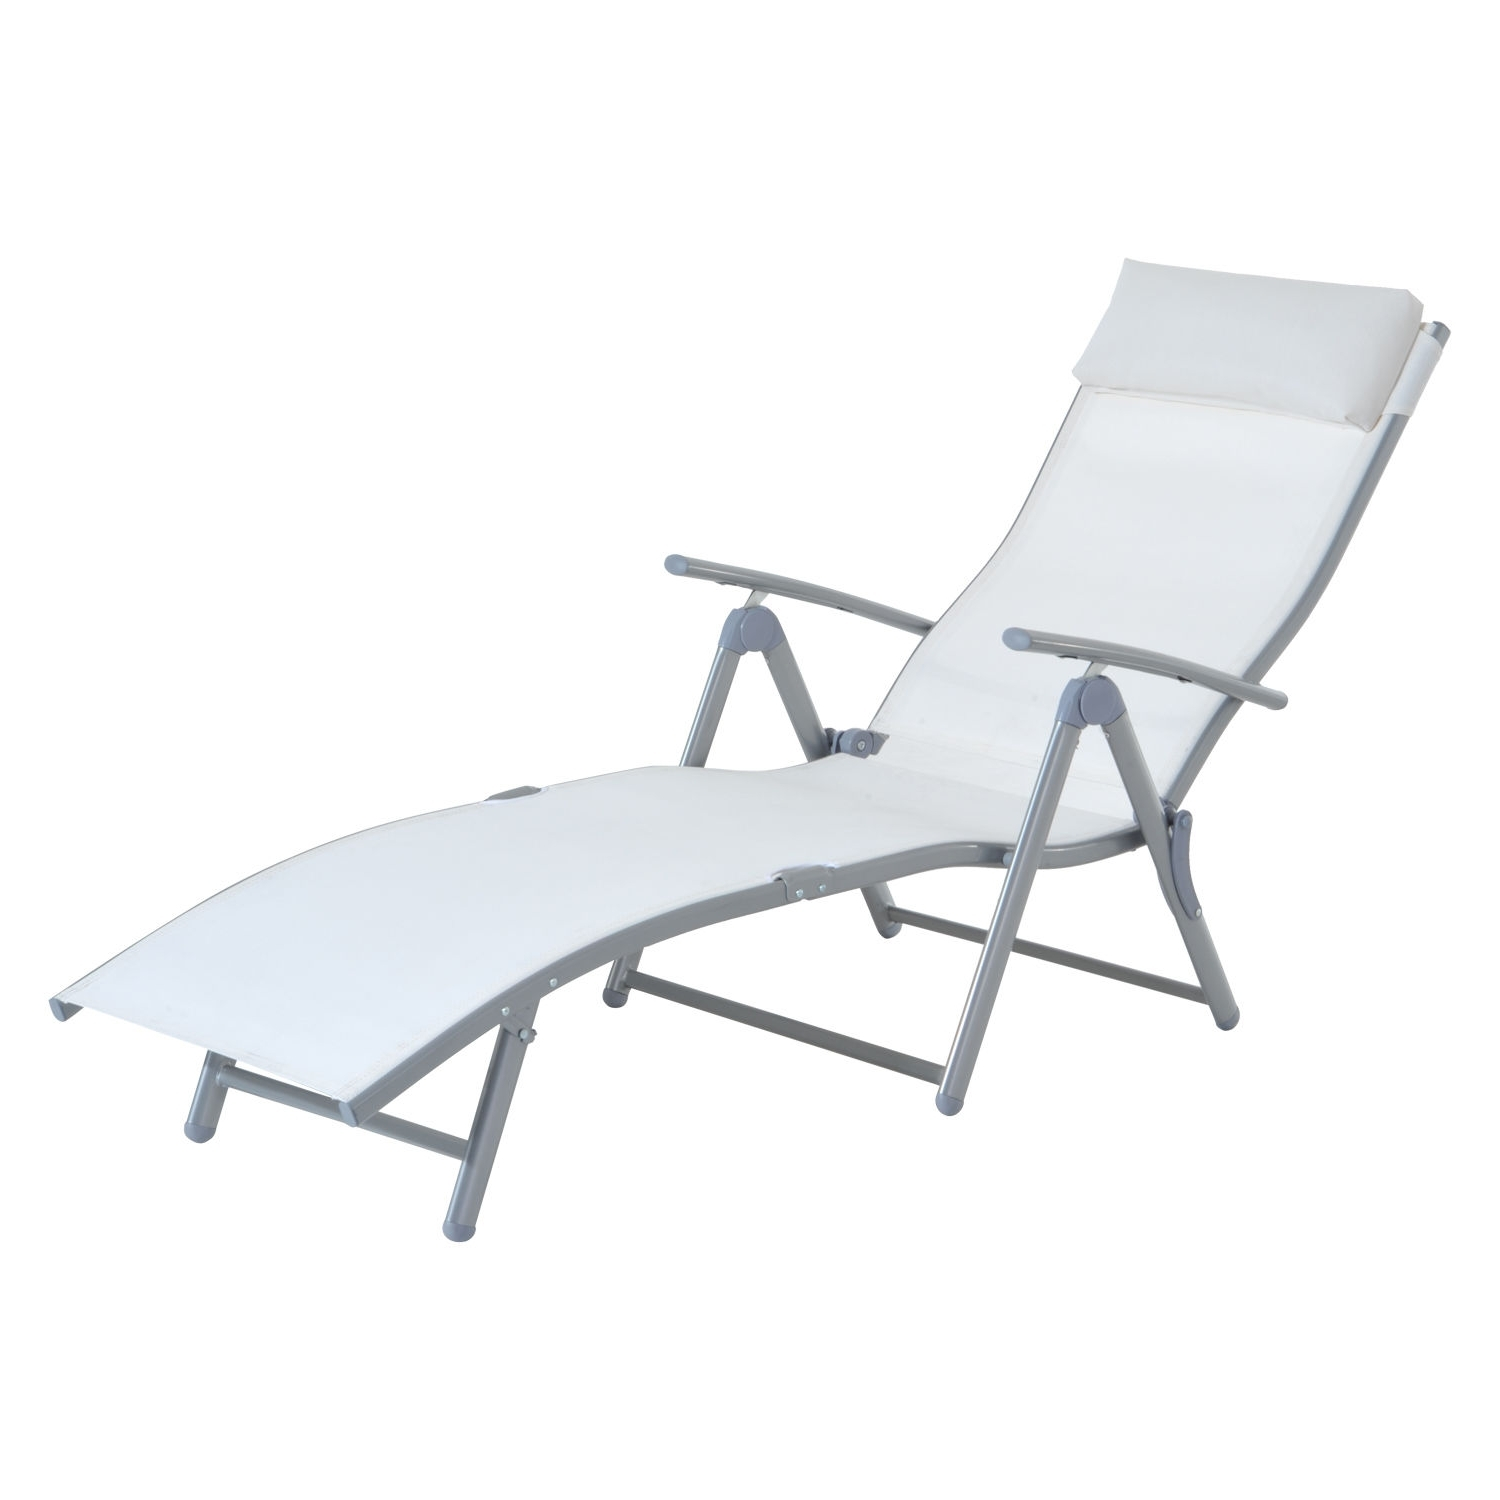 Outdoor : Lowes Chaise Lounge Indoor Outdoor Chaise Lounge Chairs With Regard To Newest Vinyl Strap Chaise Lounge Chairs (View 7 of 15)